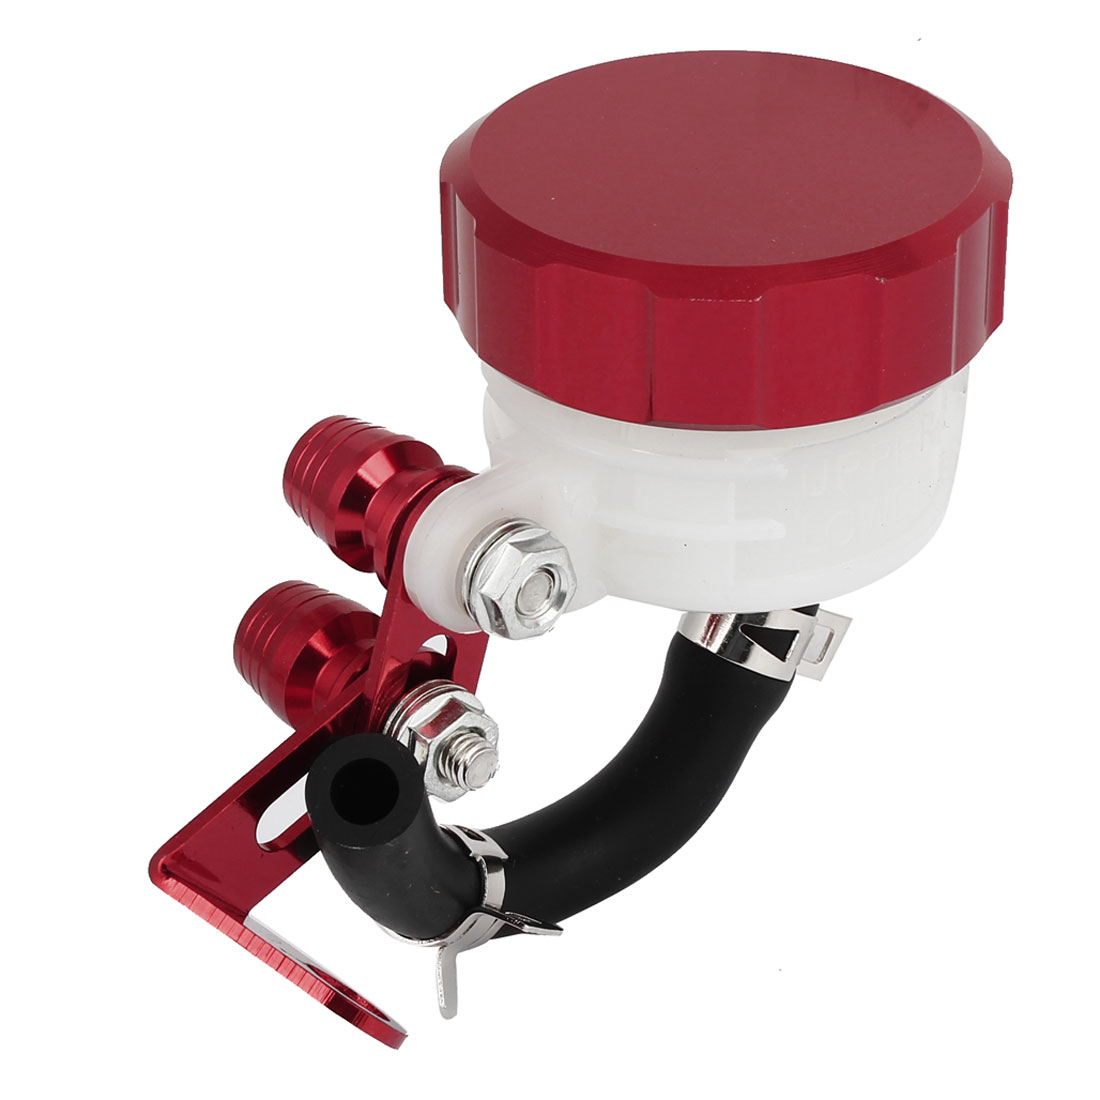 Brake Fluid Reservoir Remoulded Cylindrical Motorcycle Pump Oil Cup Red